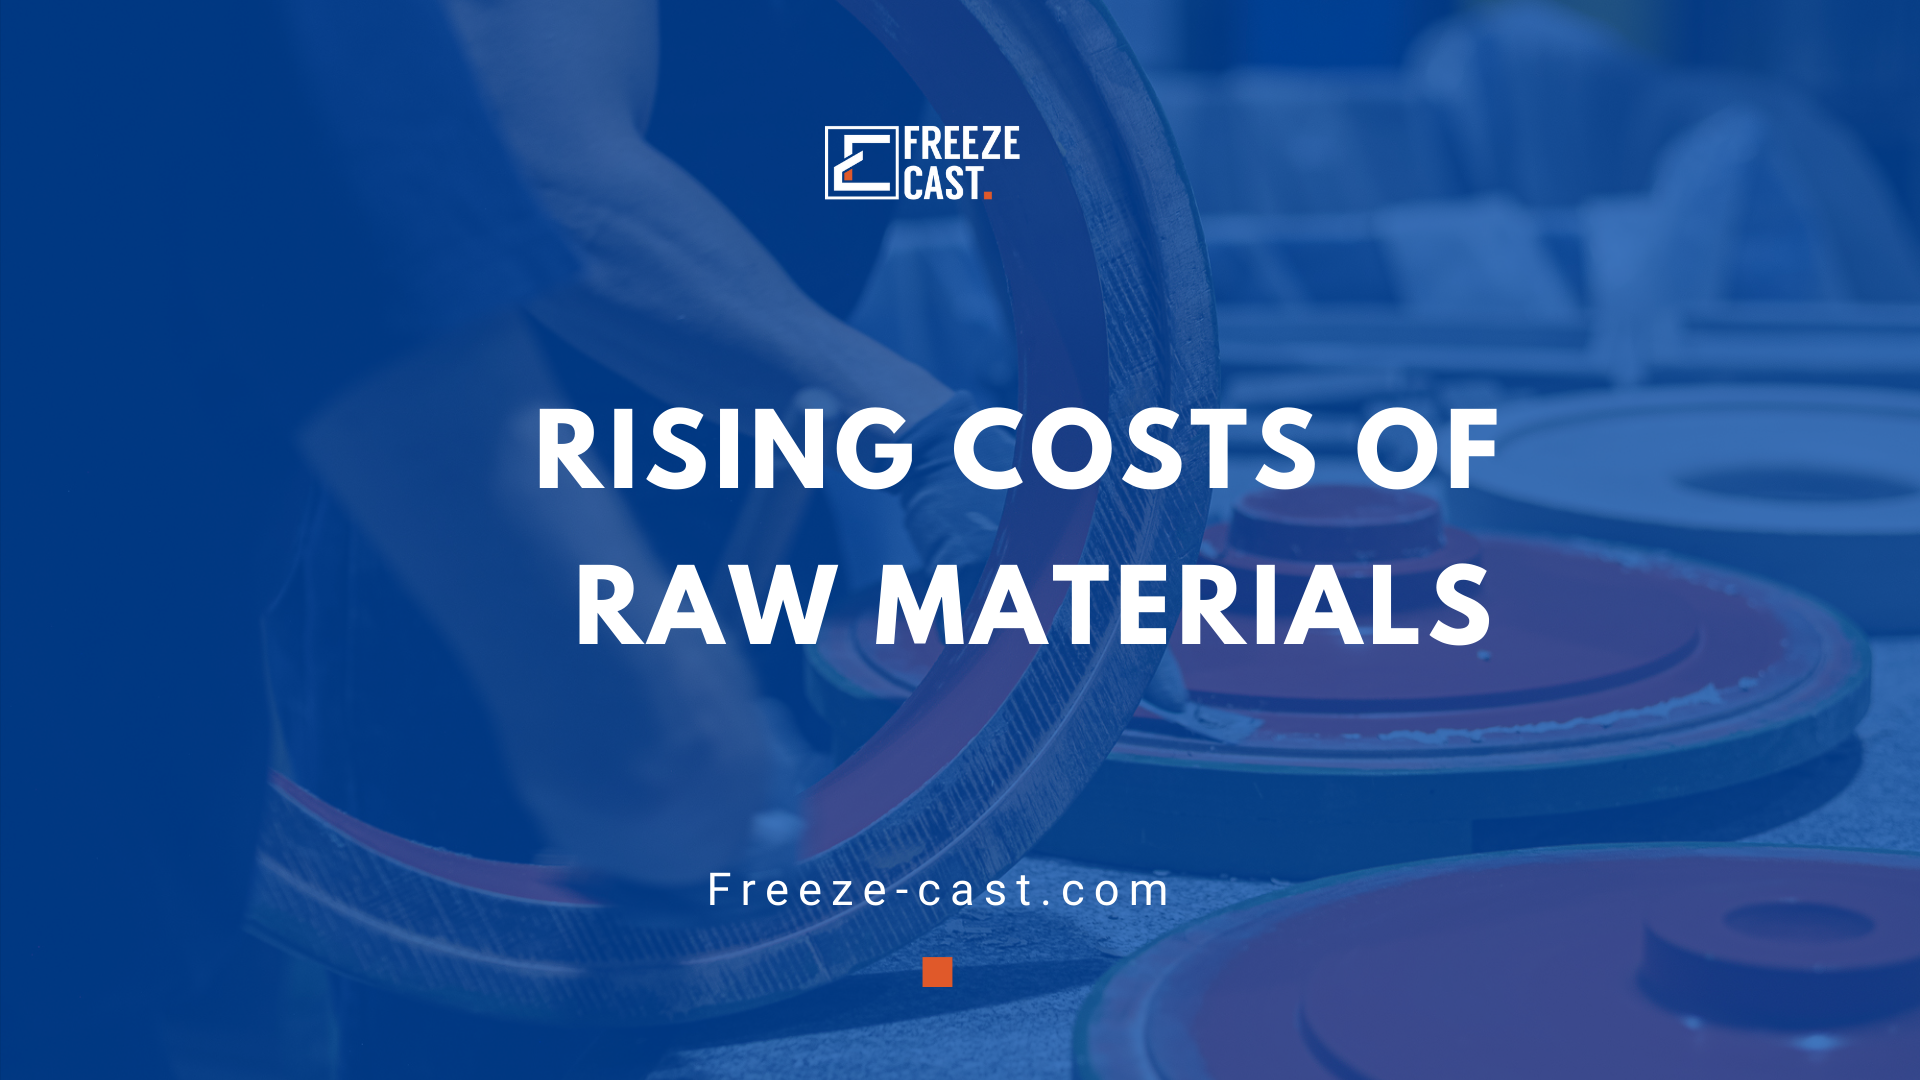 Rising costs of raw materials